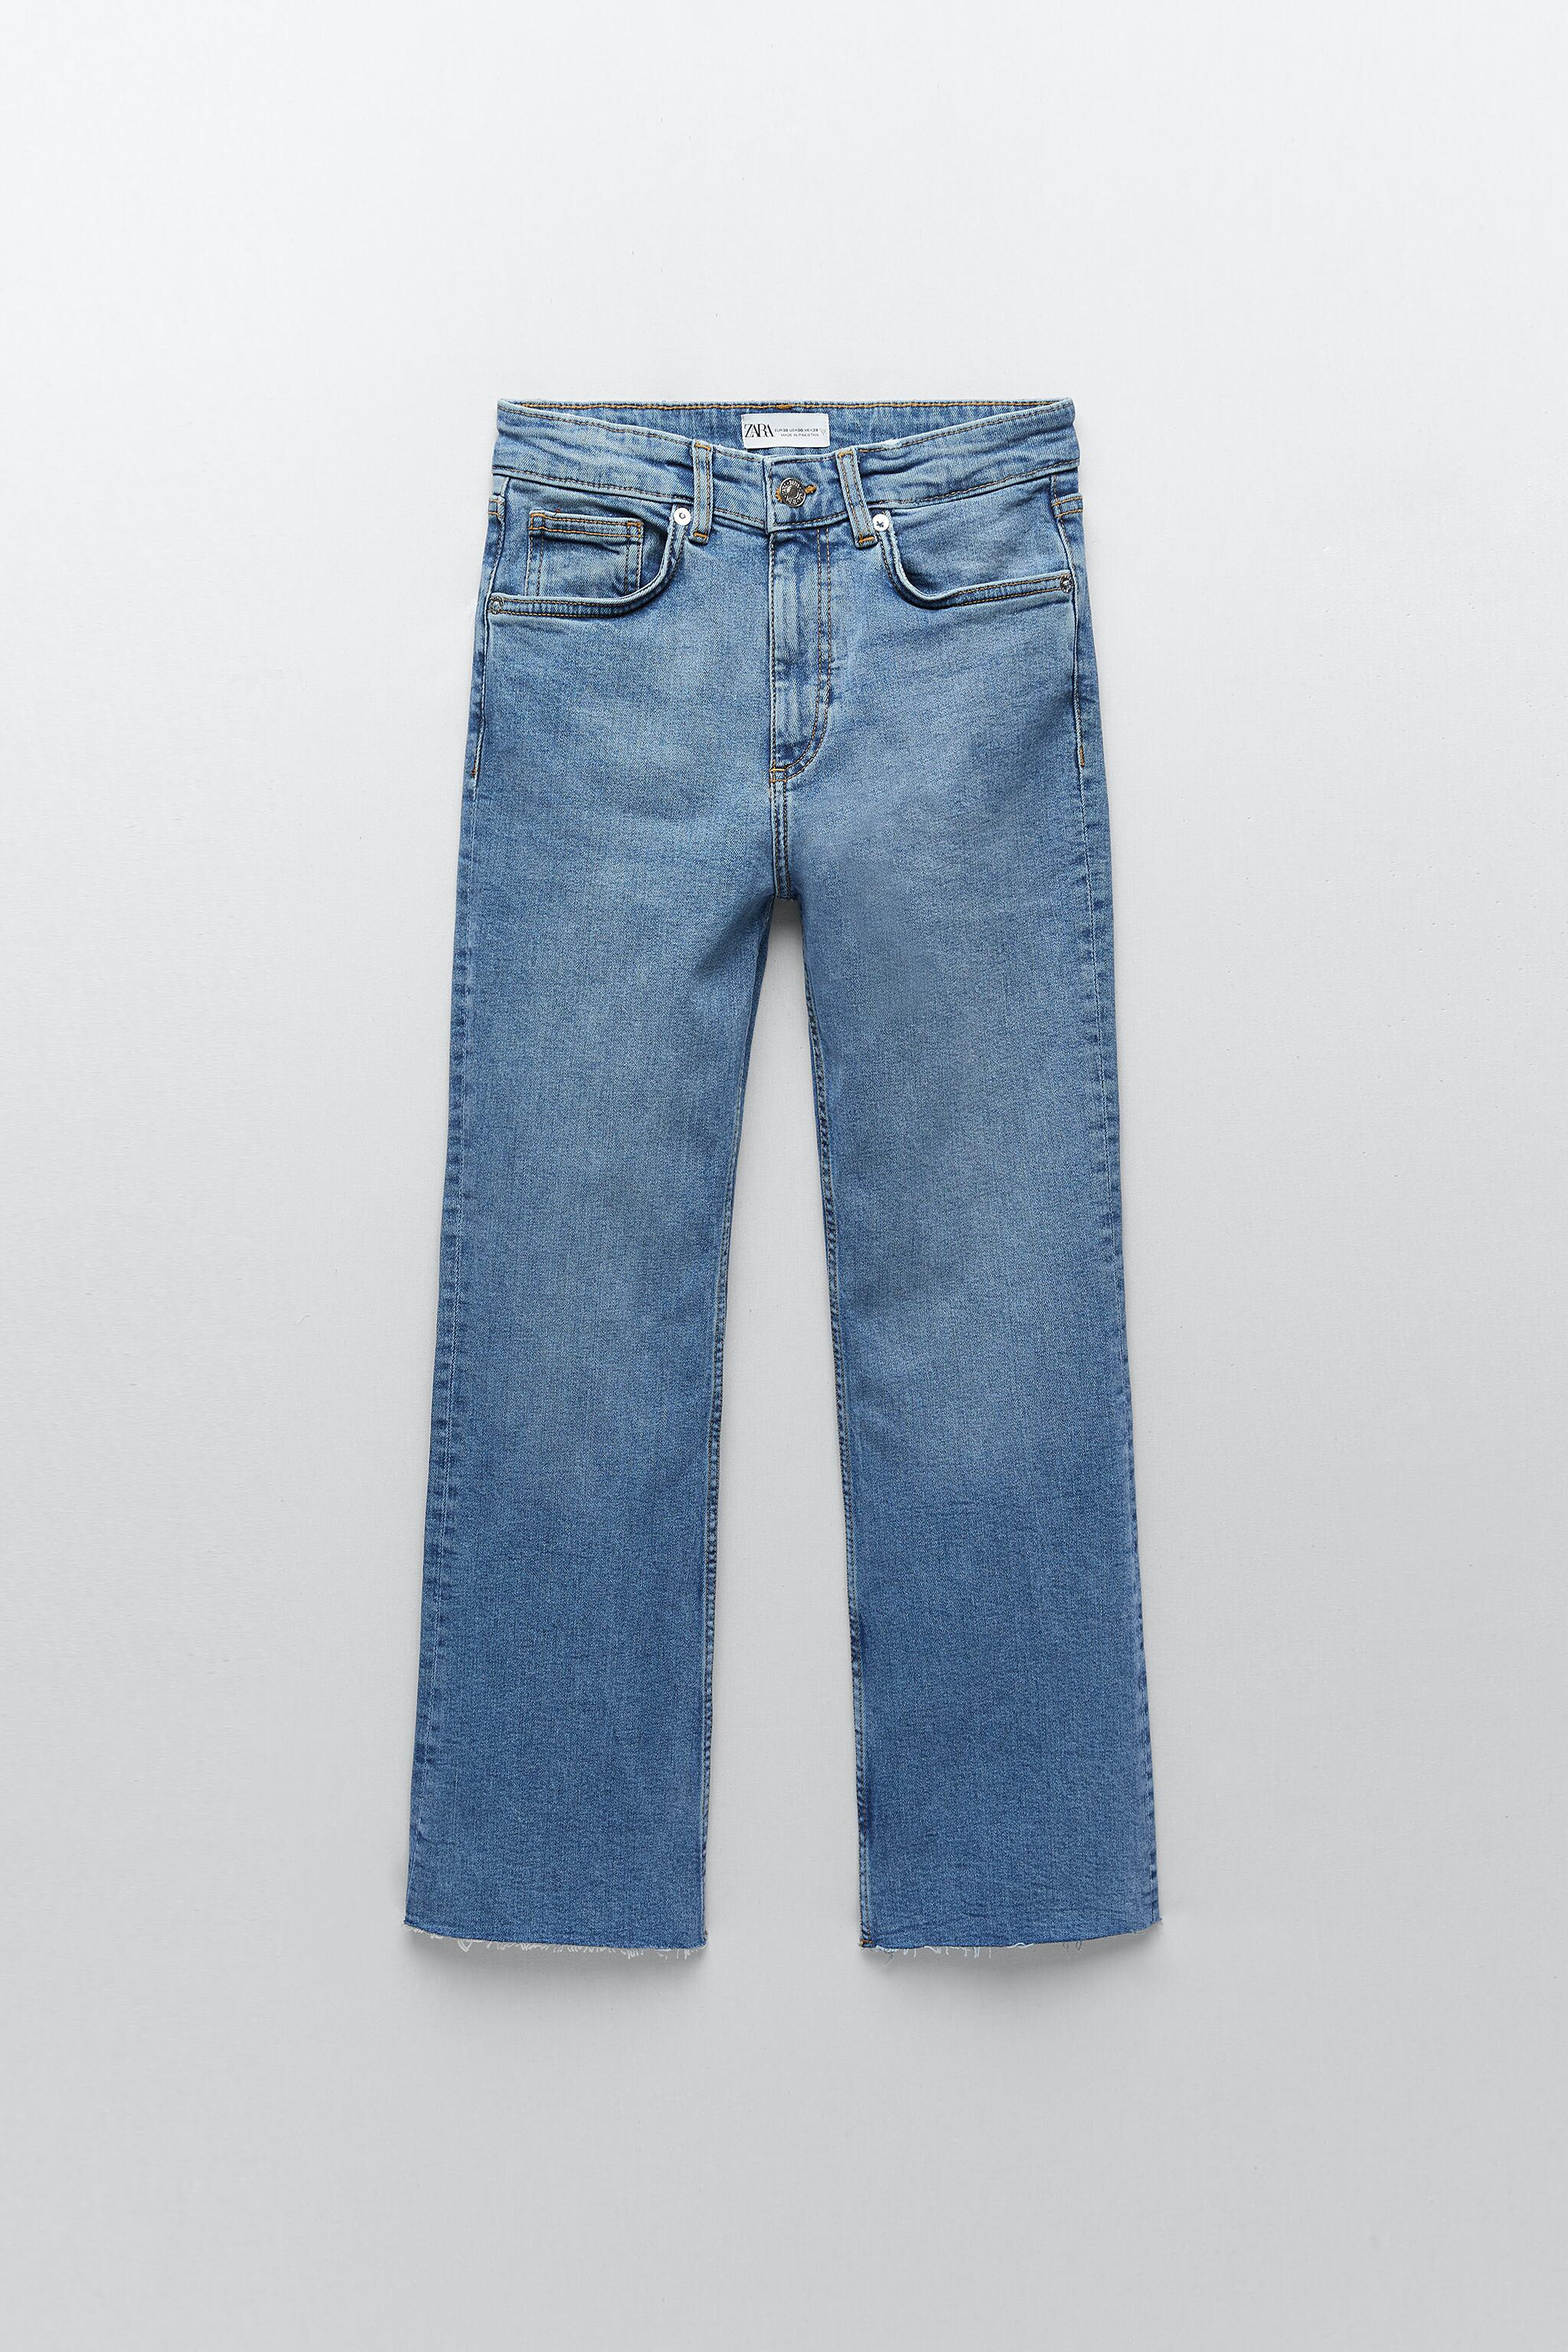 CROPPED FLARE JEANS 5